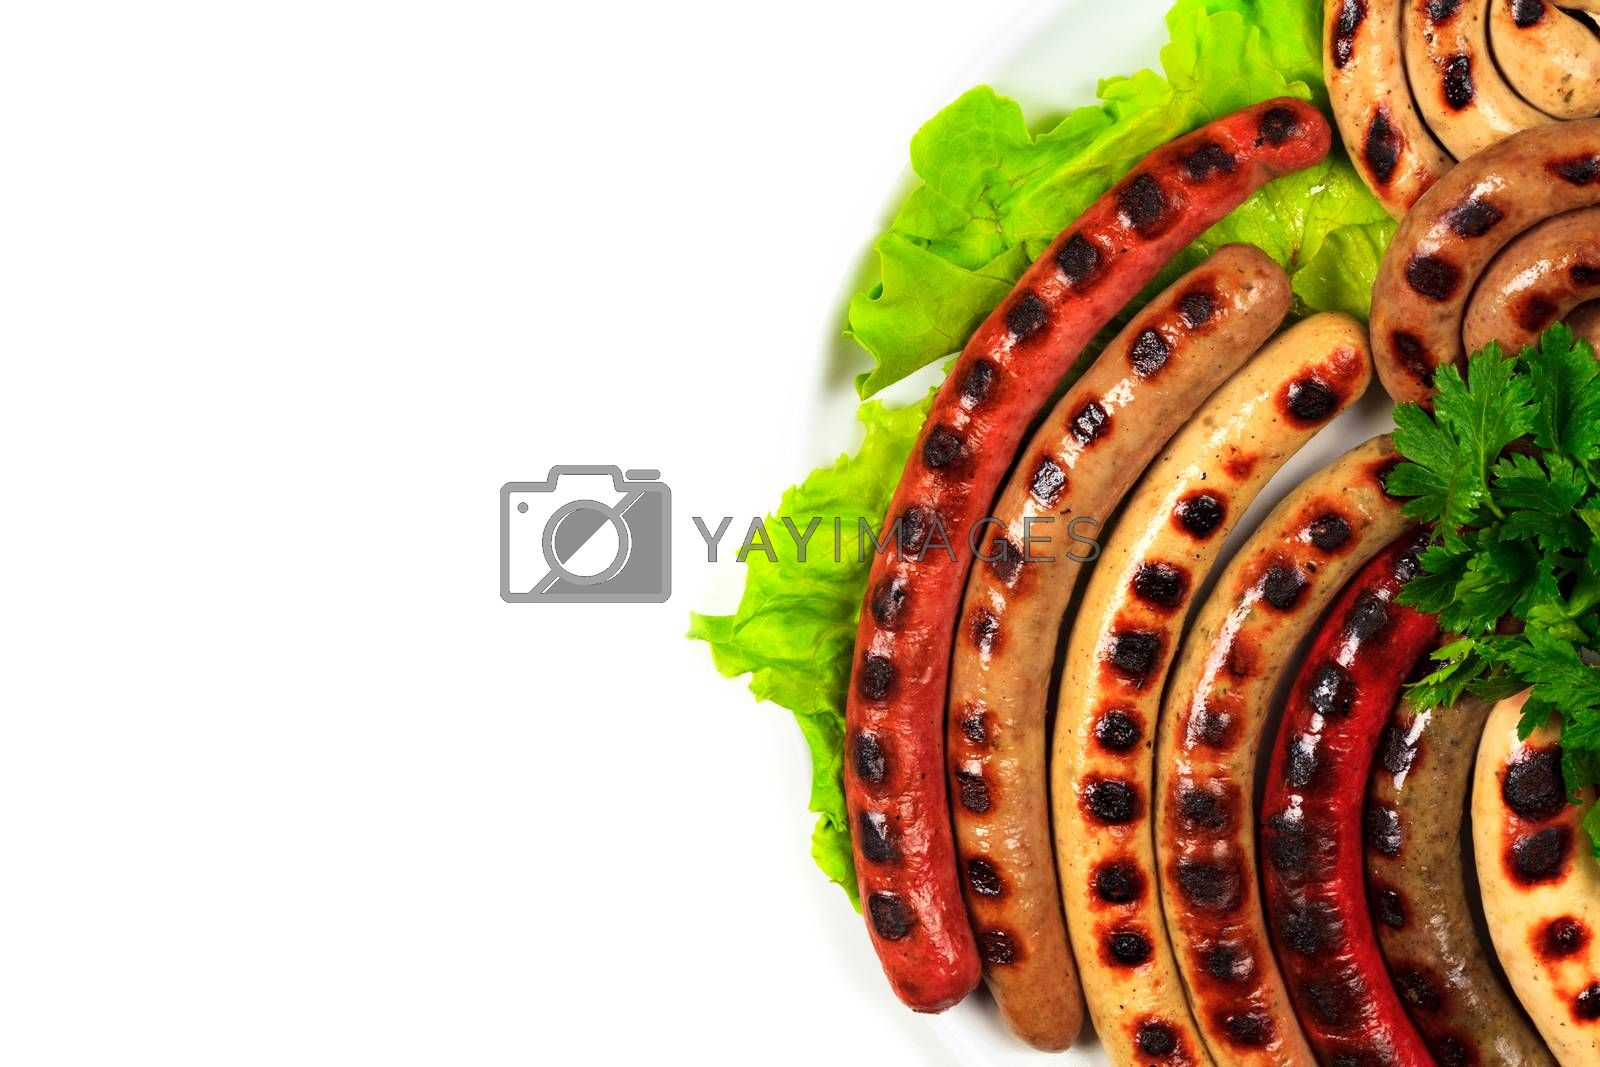 Closeup shot of a dish full of grilled sausages, isolated on white background. Flat lay